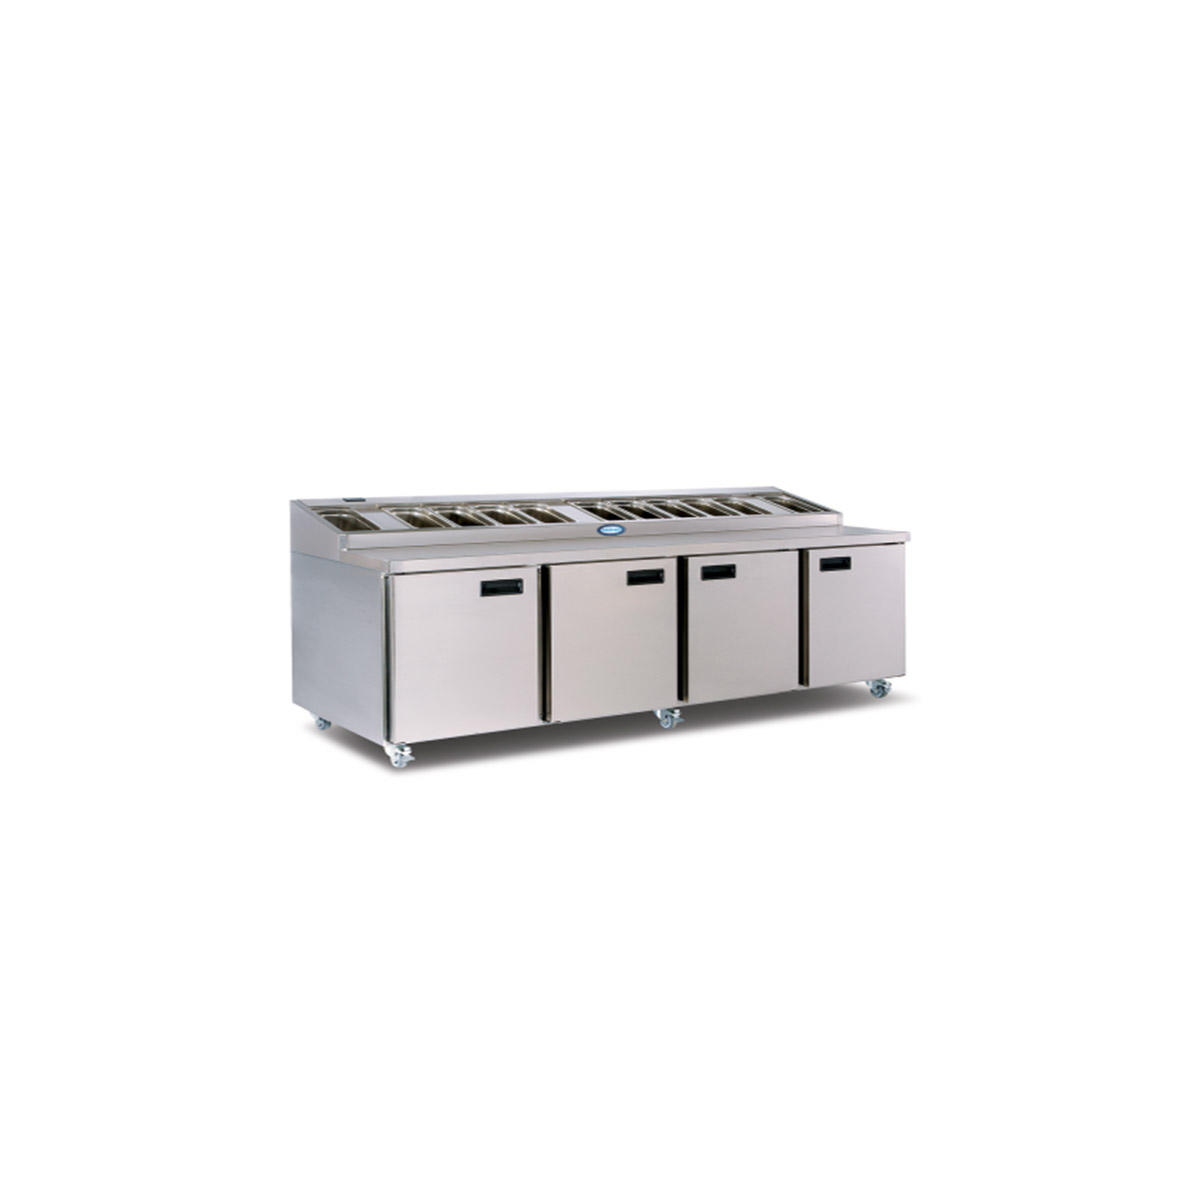 Foster FPS4HR 570 Ltr Stainless Steel Refrigerated Prep Counter